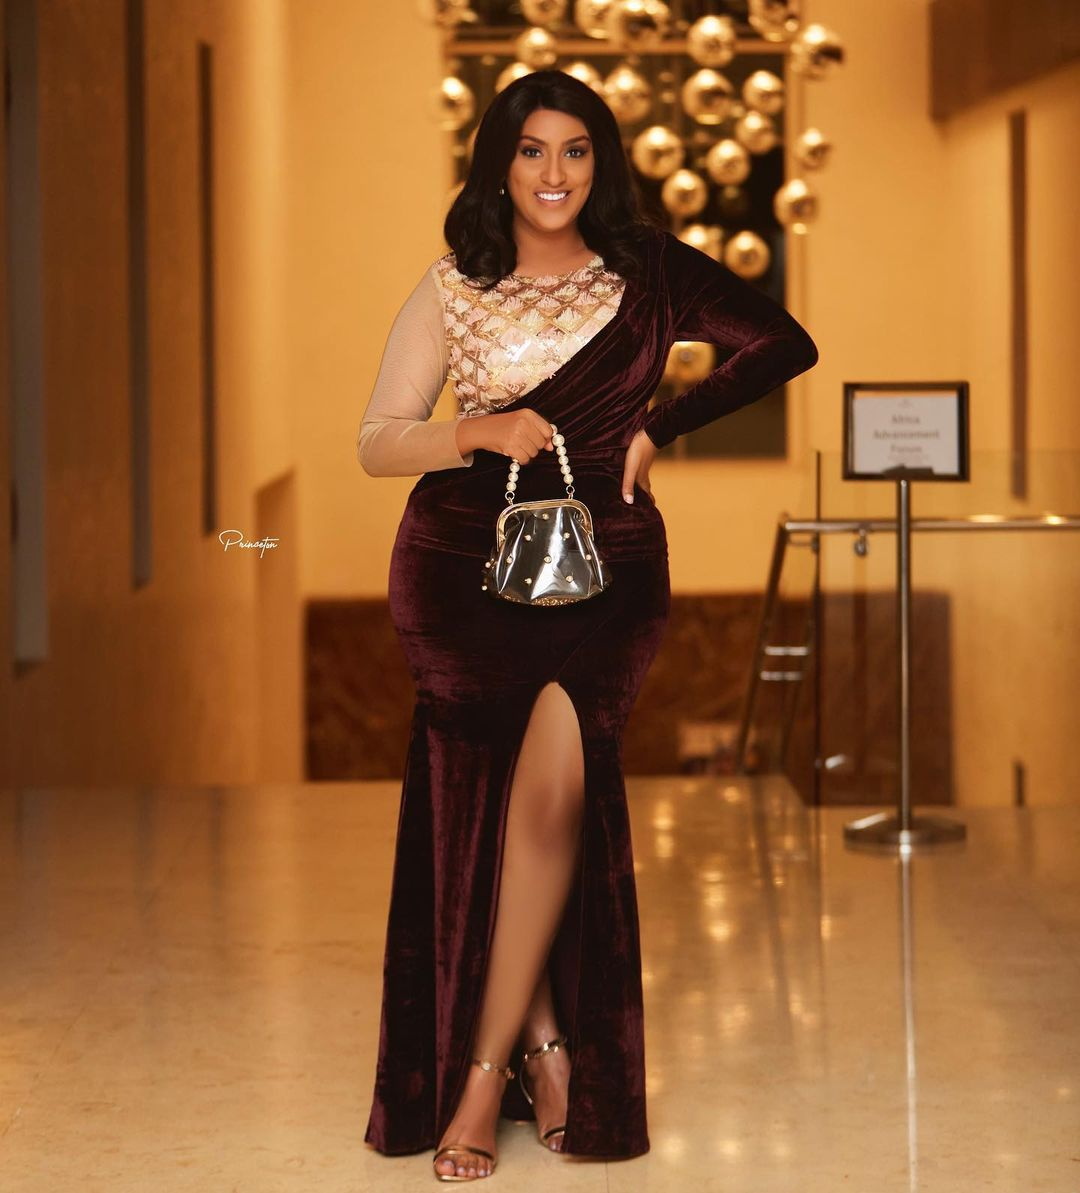 1. Juliet Ibrahim- Looking Glamorous For The Weekend